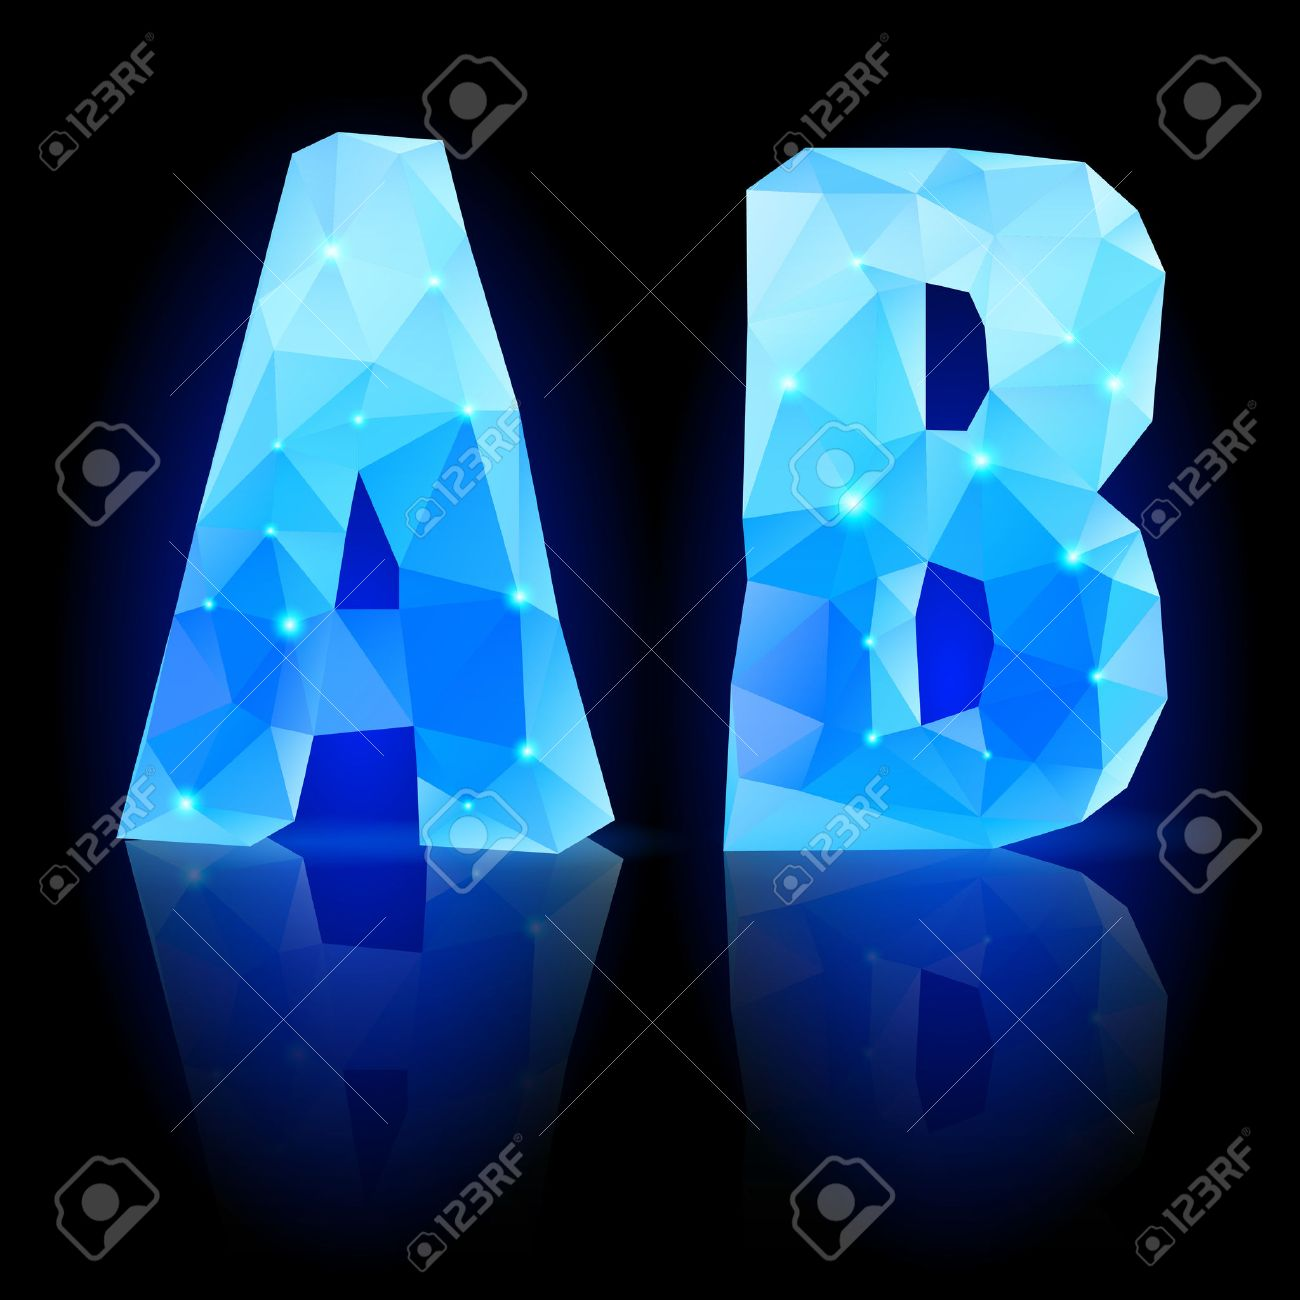 crystal style a and b letters with reflection on black backround